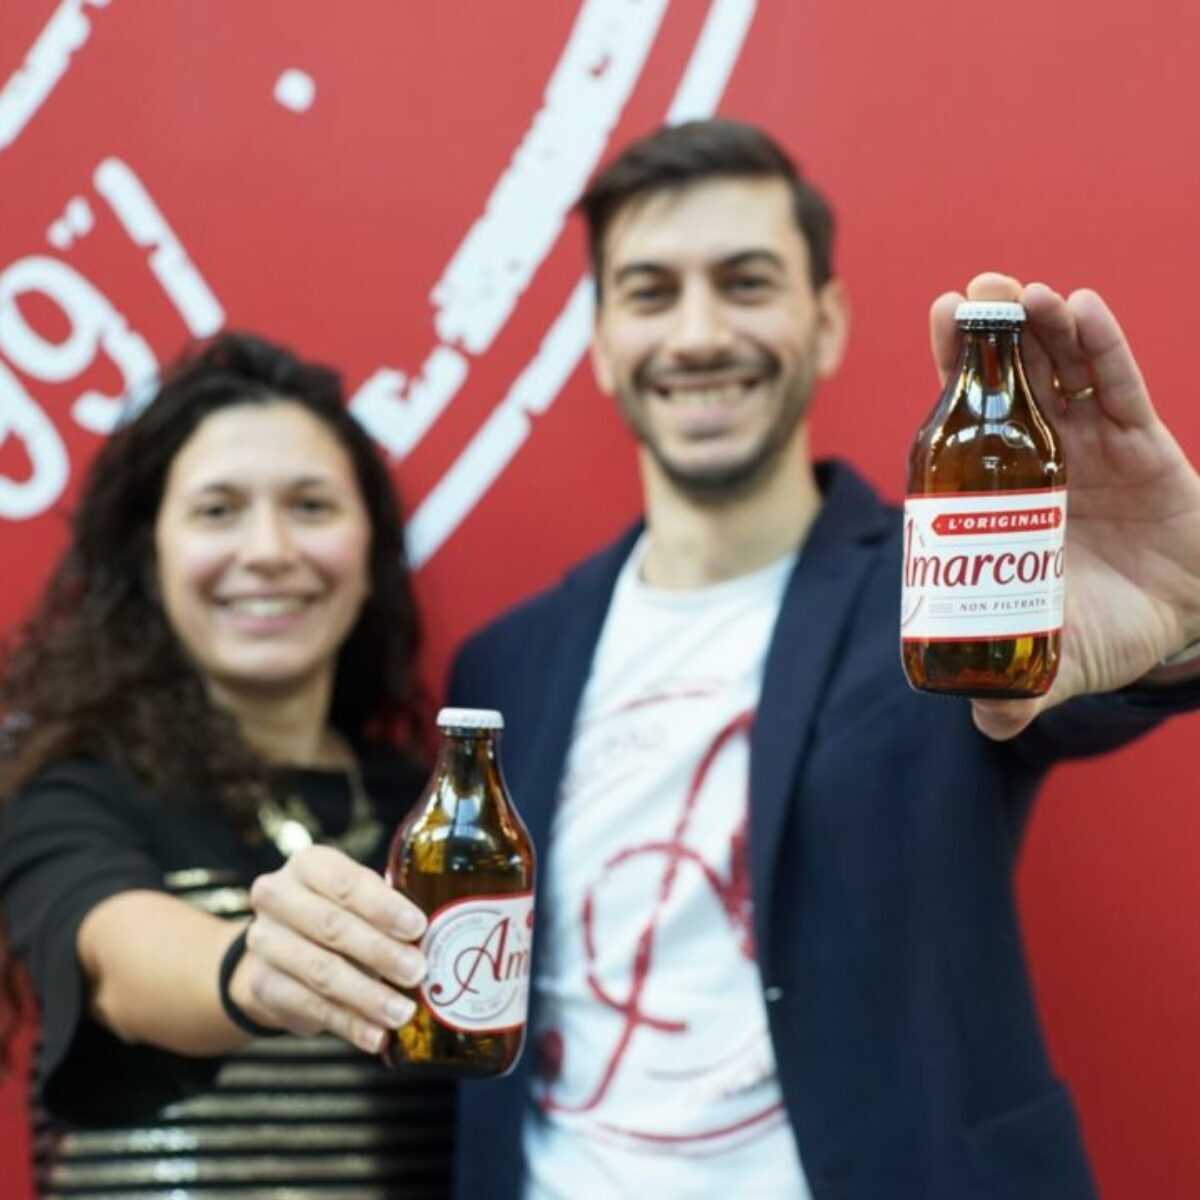 Rimini, Amarcord presenta la nuova birra L'Originale a Beer&Food Attraction